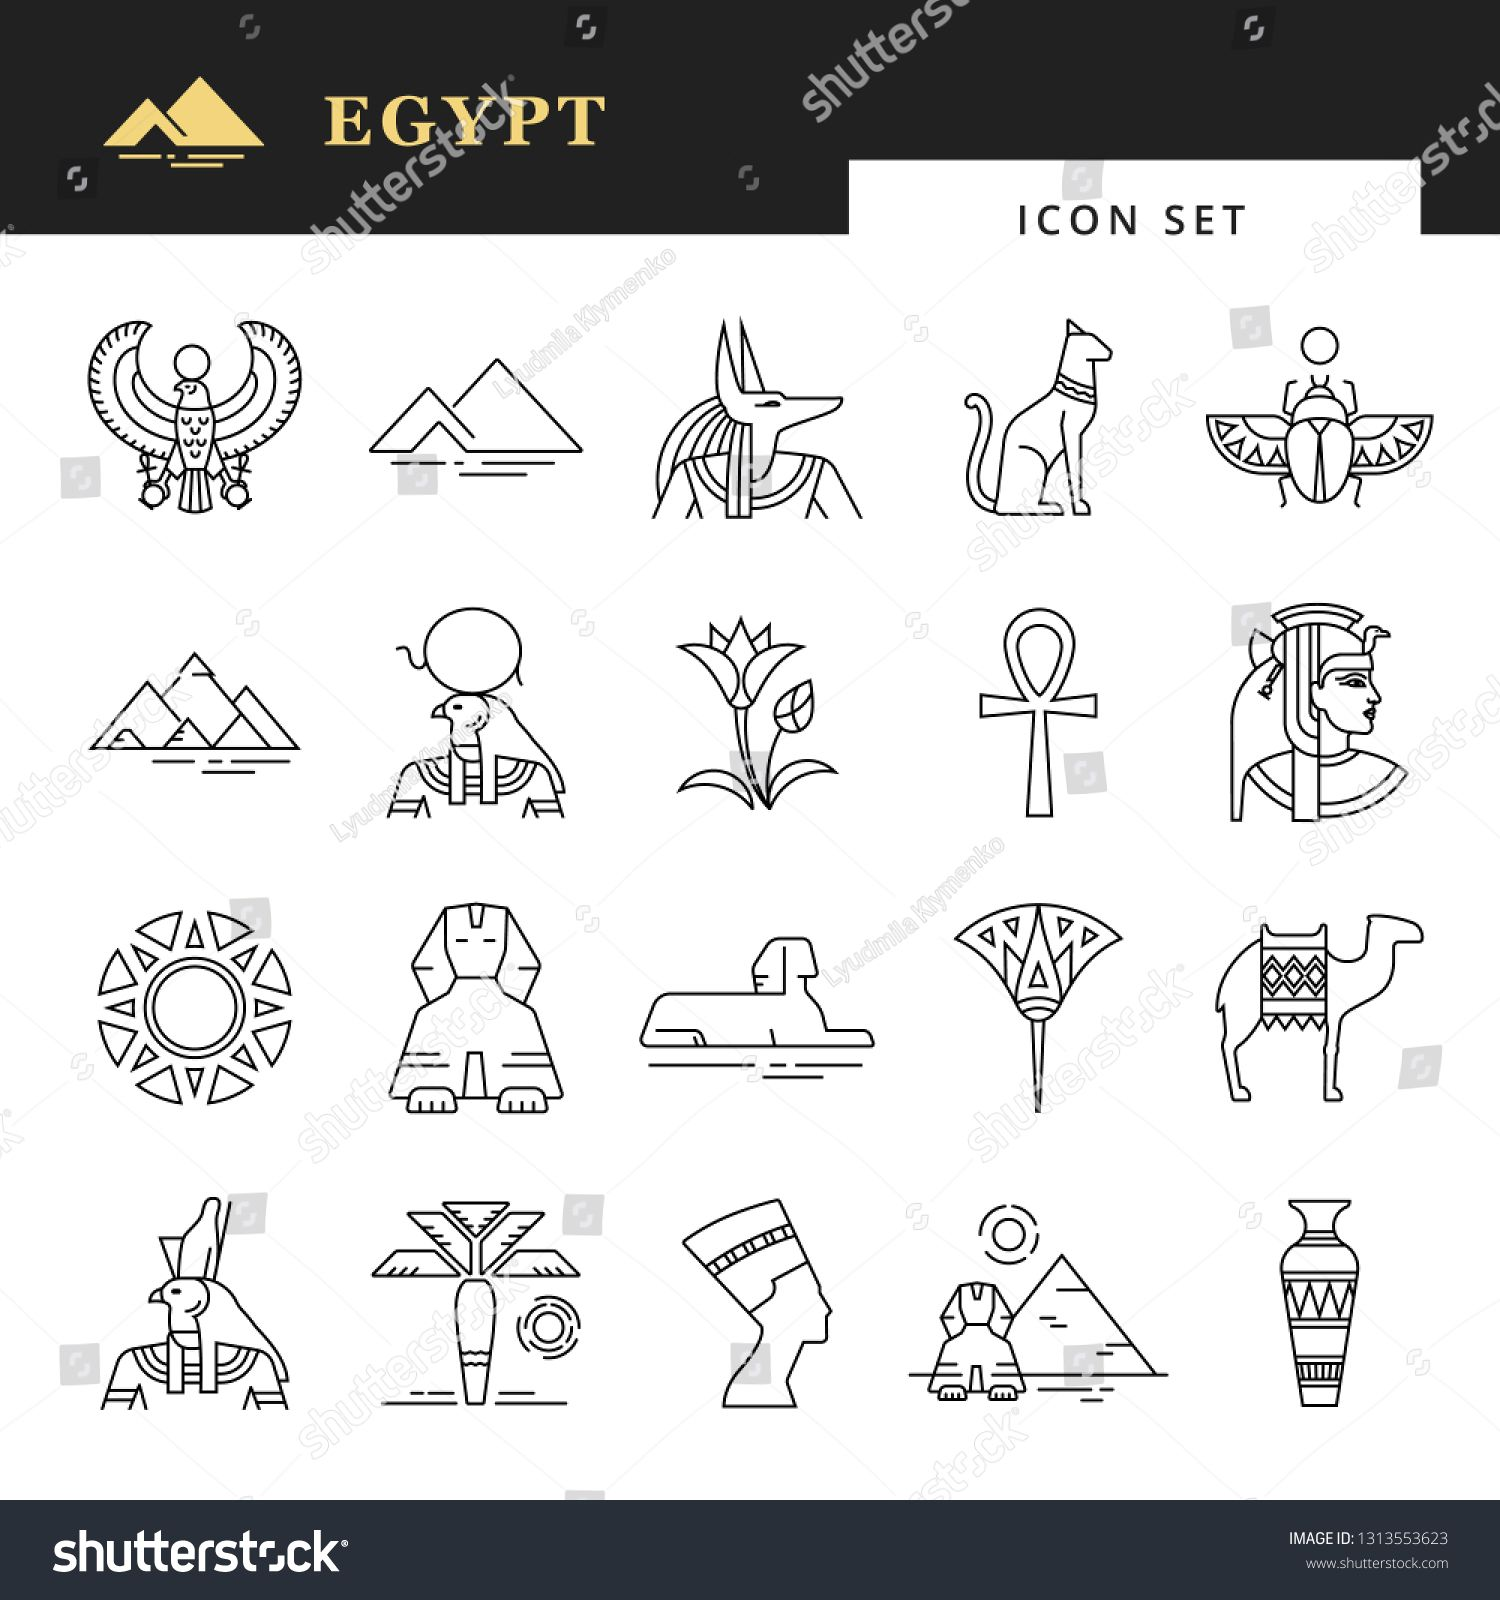 Classic Elements Of Egypt Egyptian Icon Set For A Logo